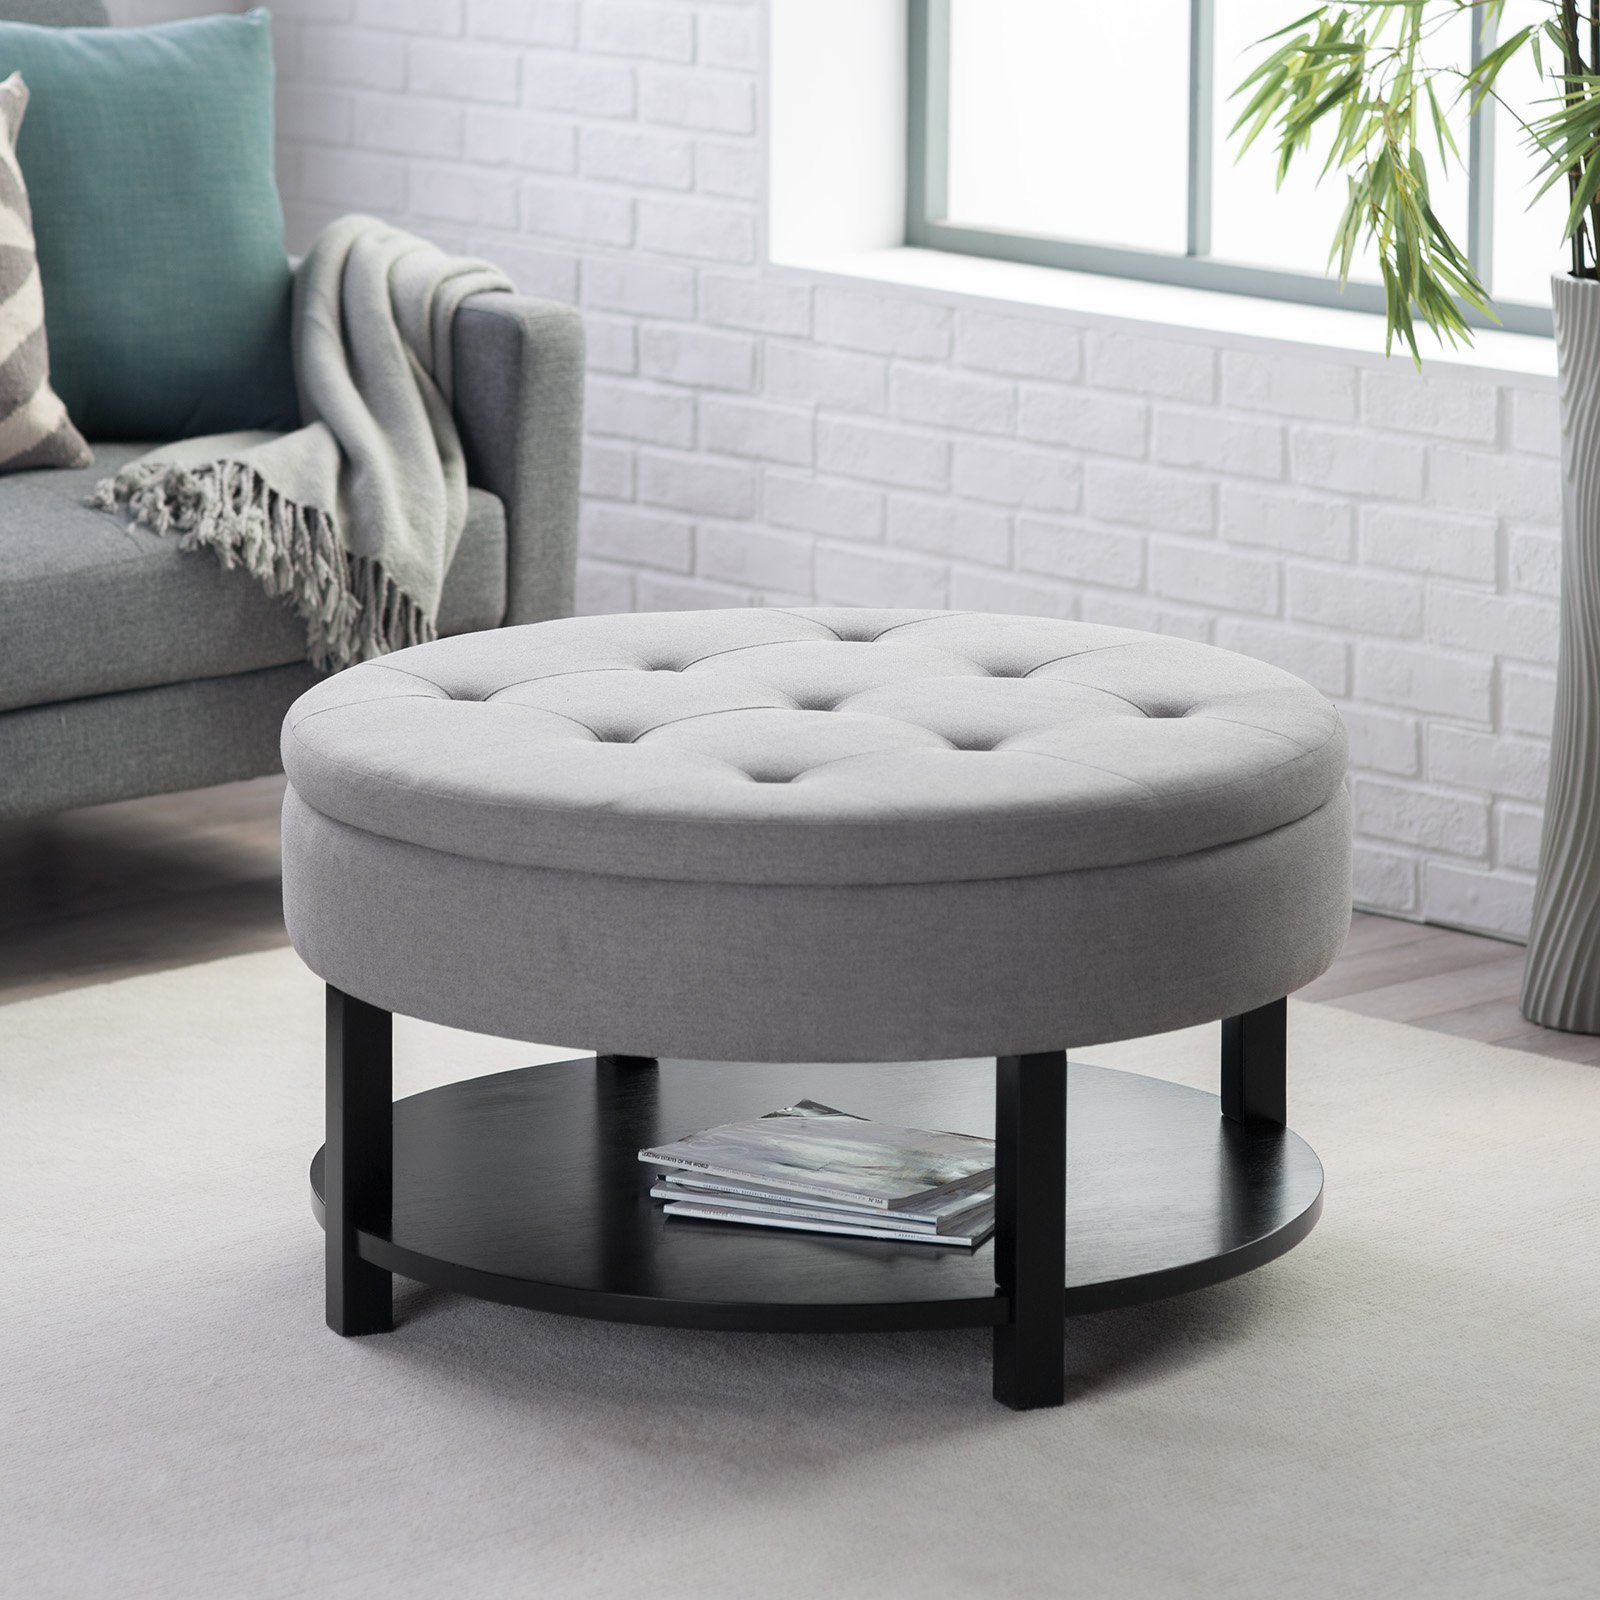 Large Ottoman Coffee Table | Ottoman Coffee Table Combination | Suede Ottoman Coffee Table